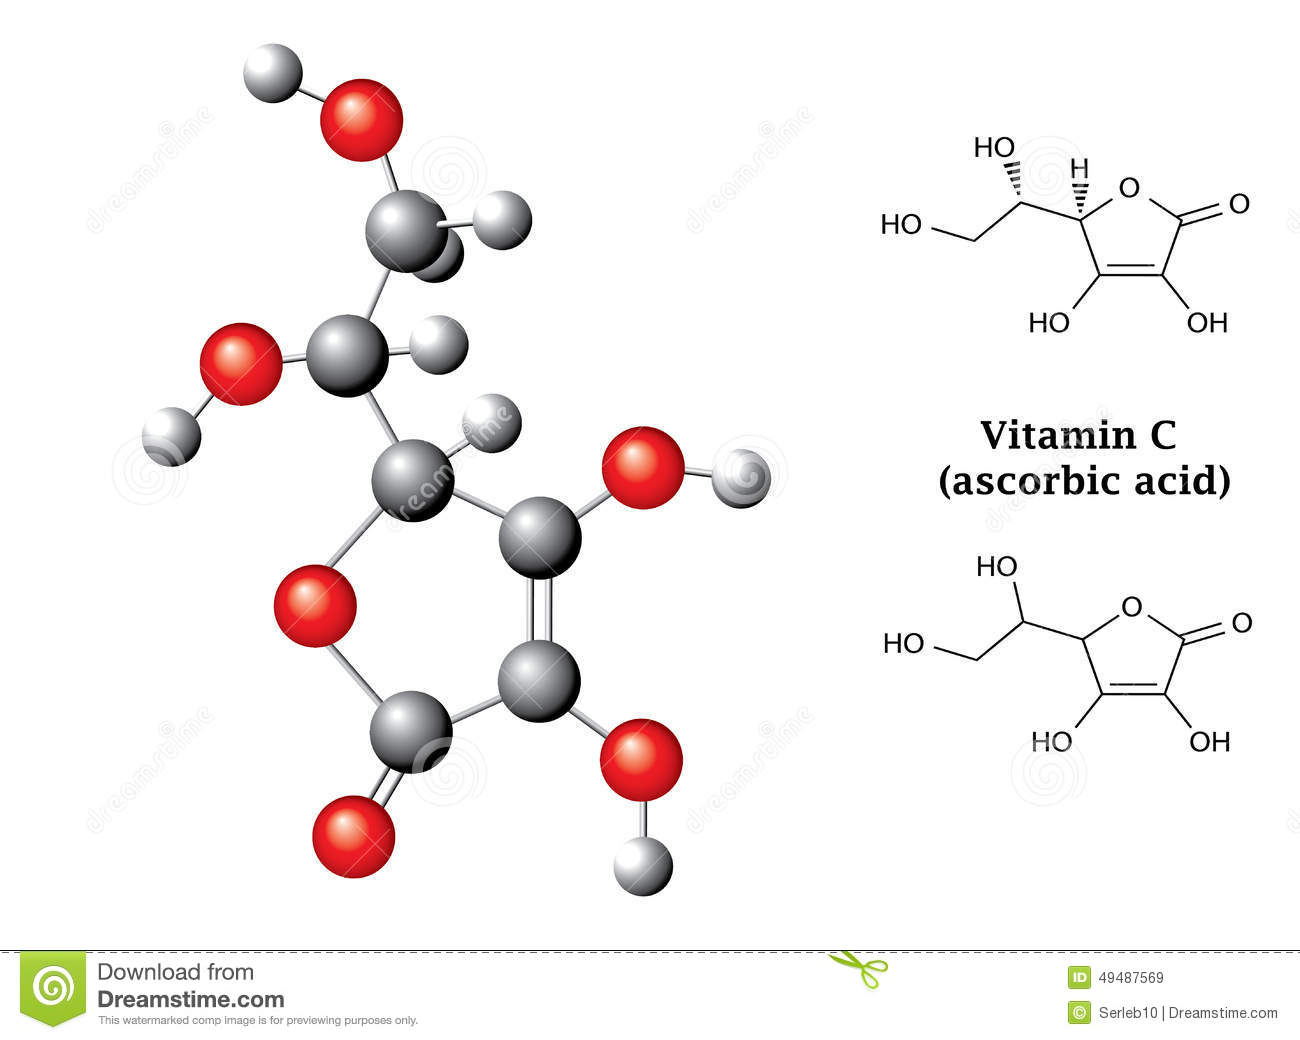 chemistry vitamin c Tamin c, ascorbic acid, is one of the most important vitamins found in citrus juices, including orange juice often projects find that orange juices made from frozen concentrated orange juice (fcoj) have the highest vitamin c levels as compared to freshly squeezed or not-from-concentrate (nfc) juices this is probably due to the.